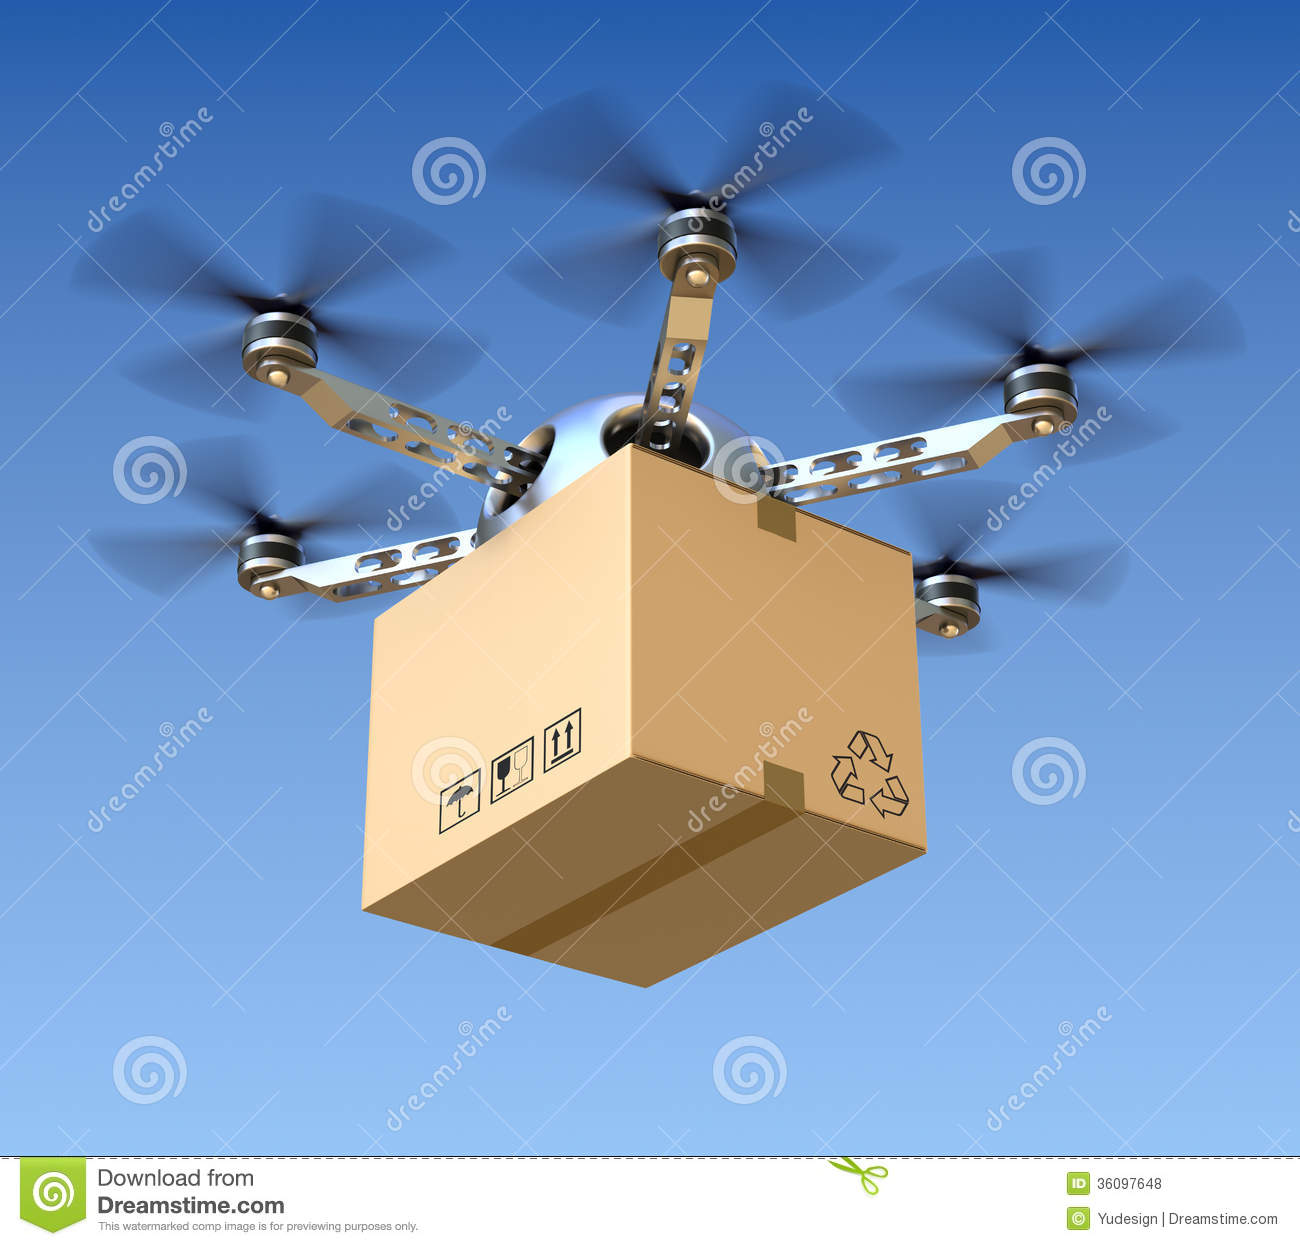 4 propeller drone with Royalty Free Stock Photos Delivery Drone Package D Concept Image36097648 on Dji Spark Versus Dji Mavic Pro together with 332100944617 further DJI Phantom 3 Professional further Honda Is Making A Luxury Jet With Really Weird Engines moreover Royalty Free Stock Photos Delivery Drone Package D Concept Image36097648.